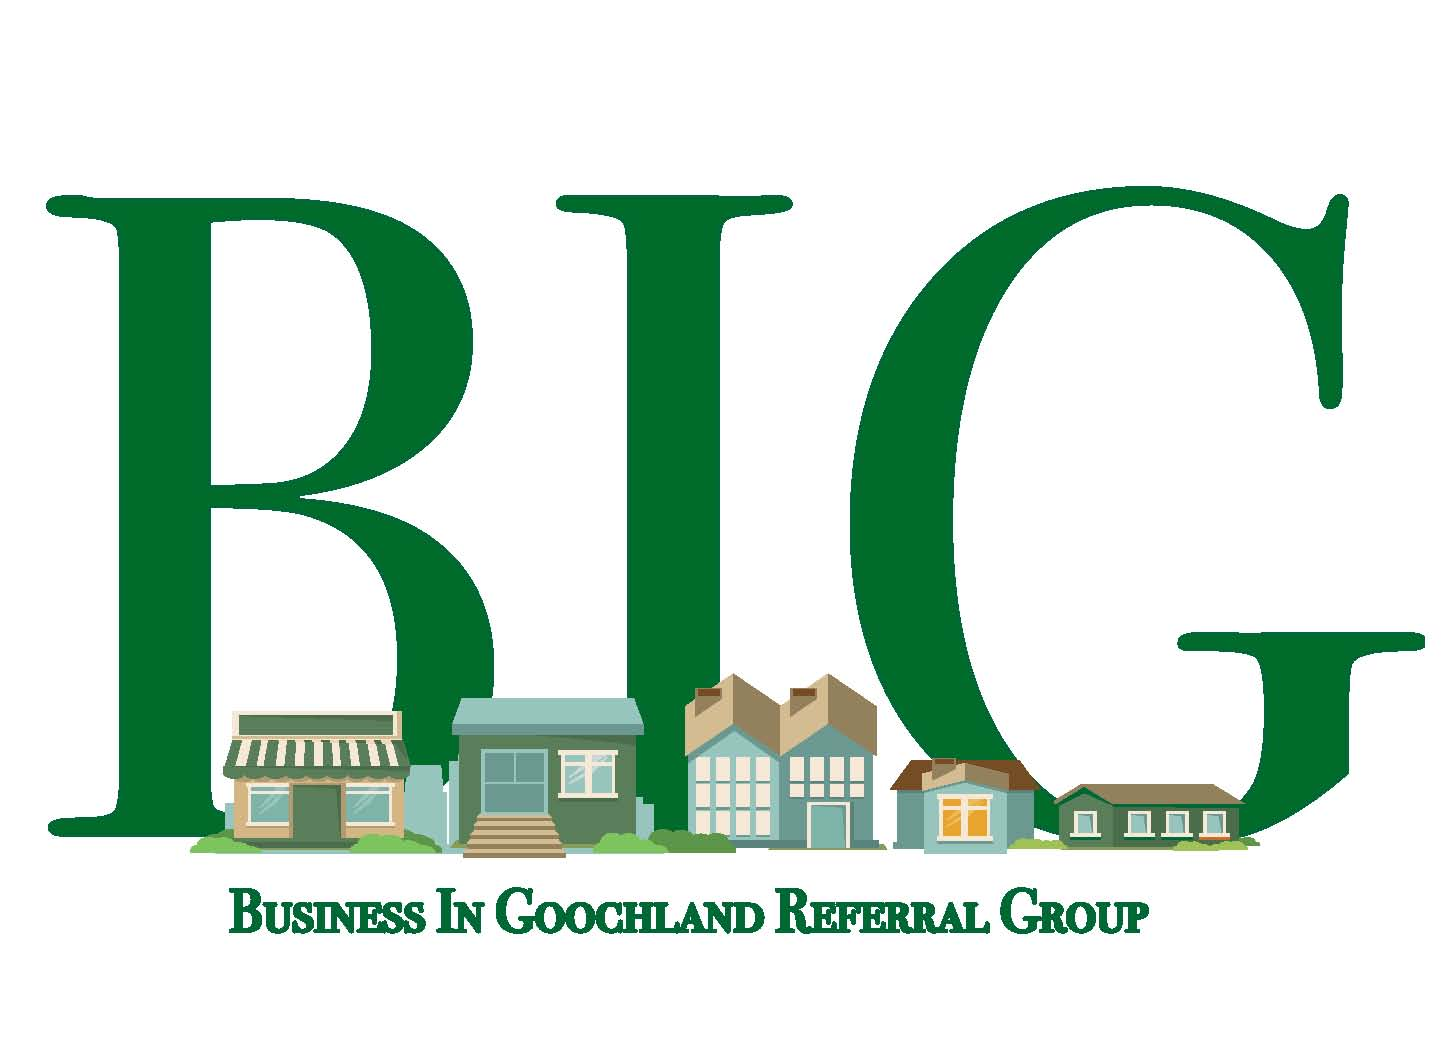 """Business In Goochland """"BIG"""" Referral Group"""